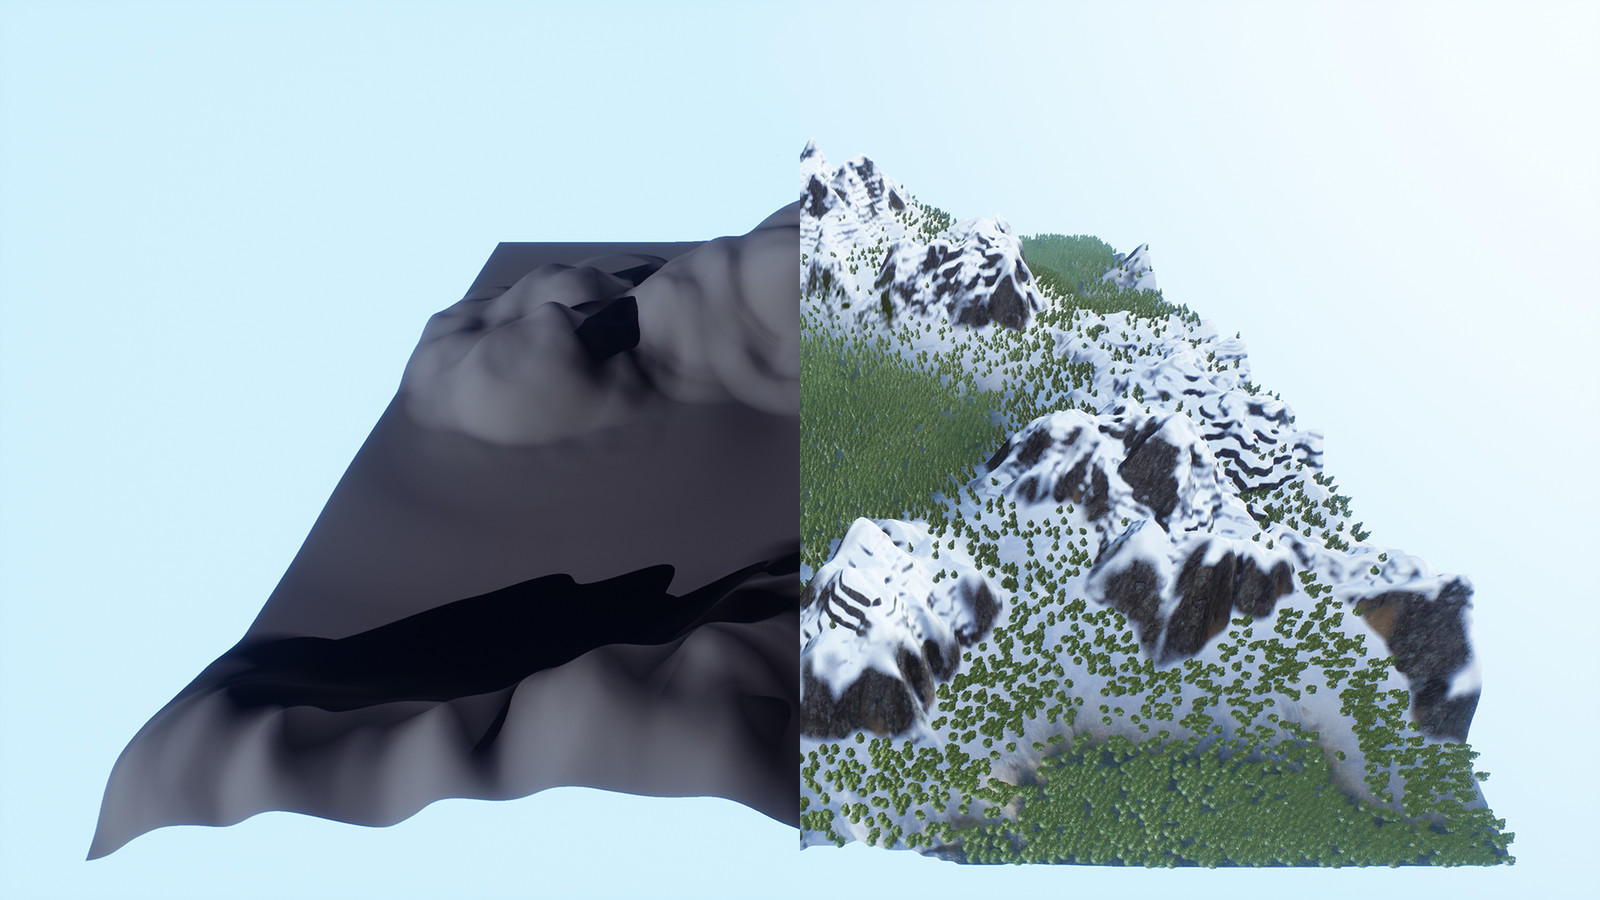 How the first terrain started of (as a sculpt) and how it looks after the tools have processed it.